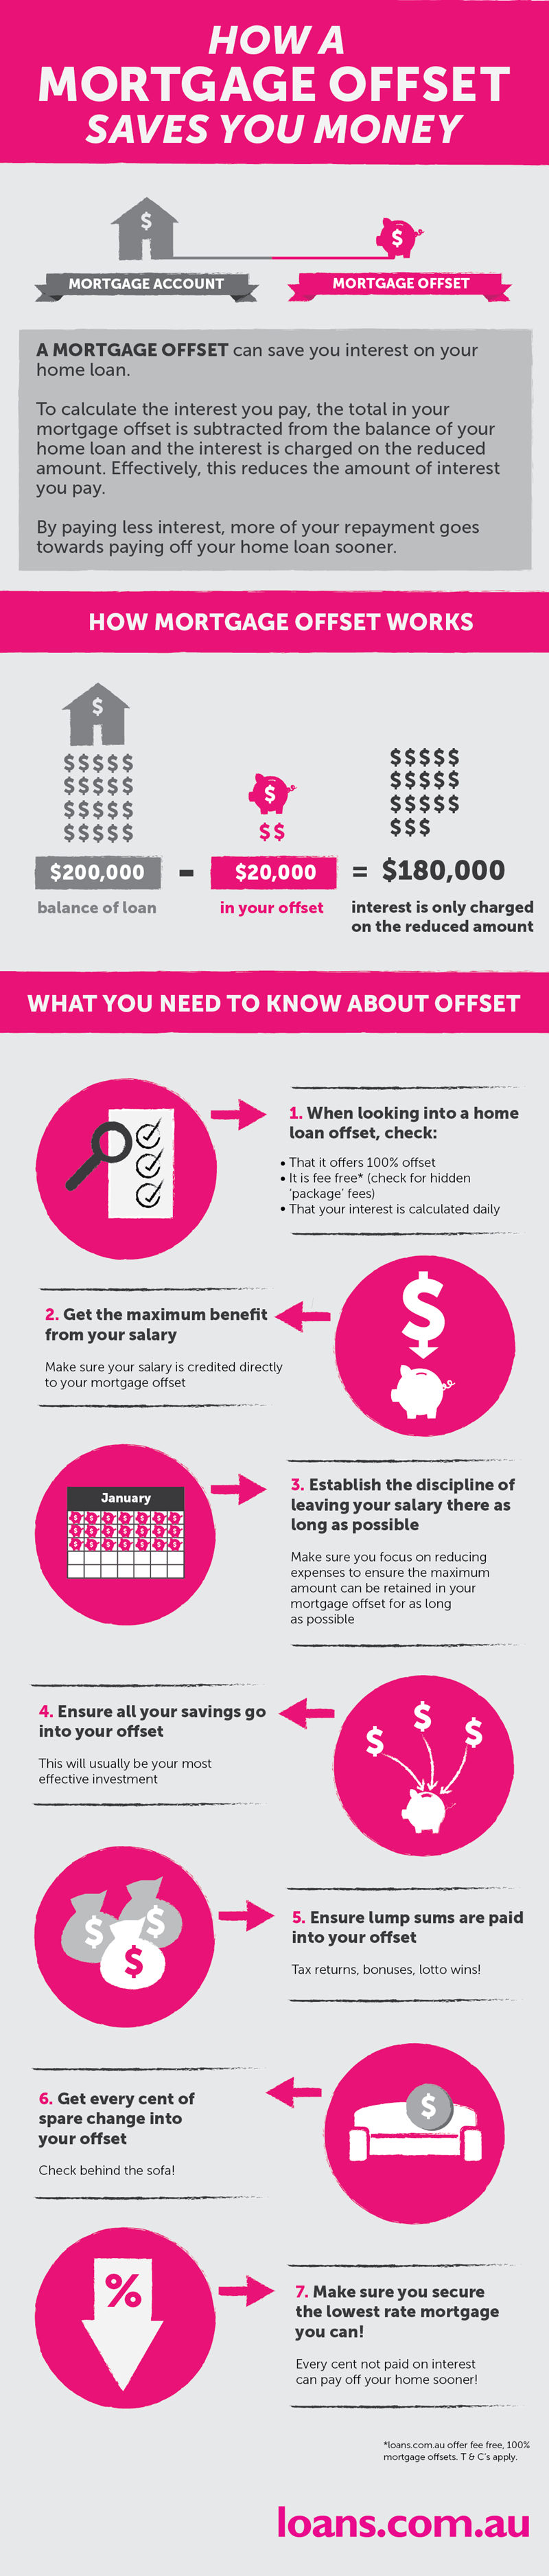 How A Mortgage Offset Saves You Money Infographic Infographic Save Your Money Mortgage